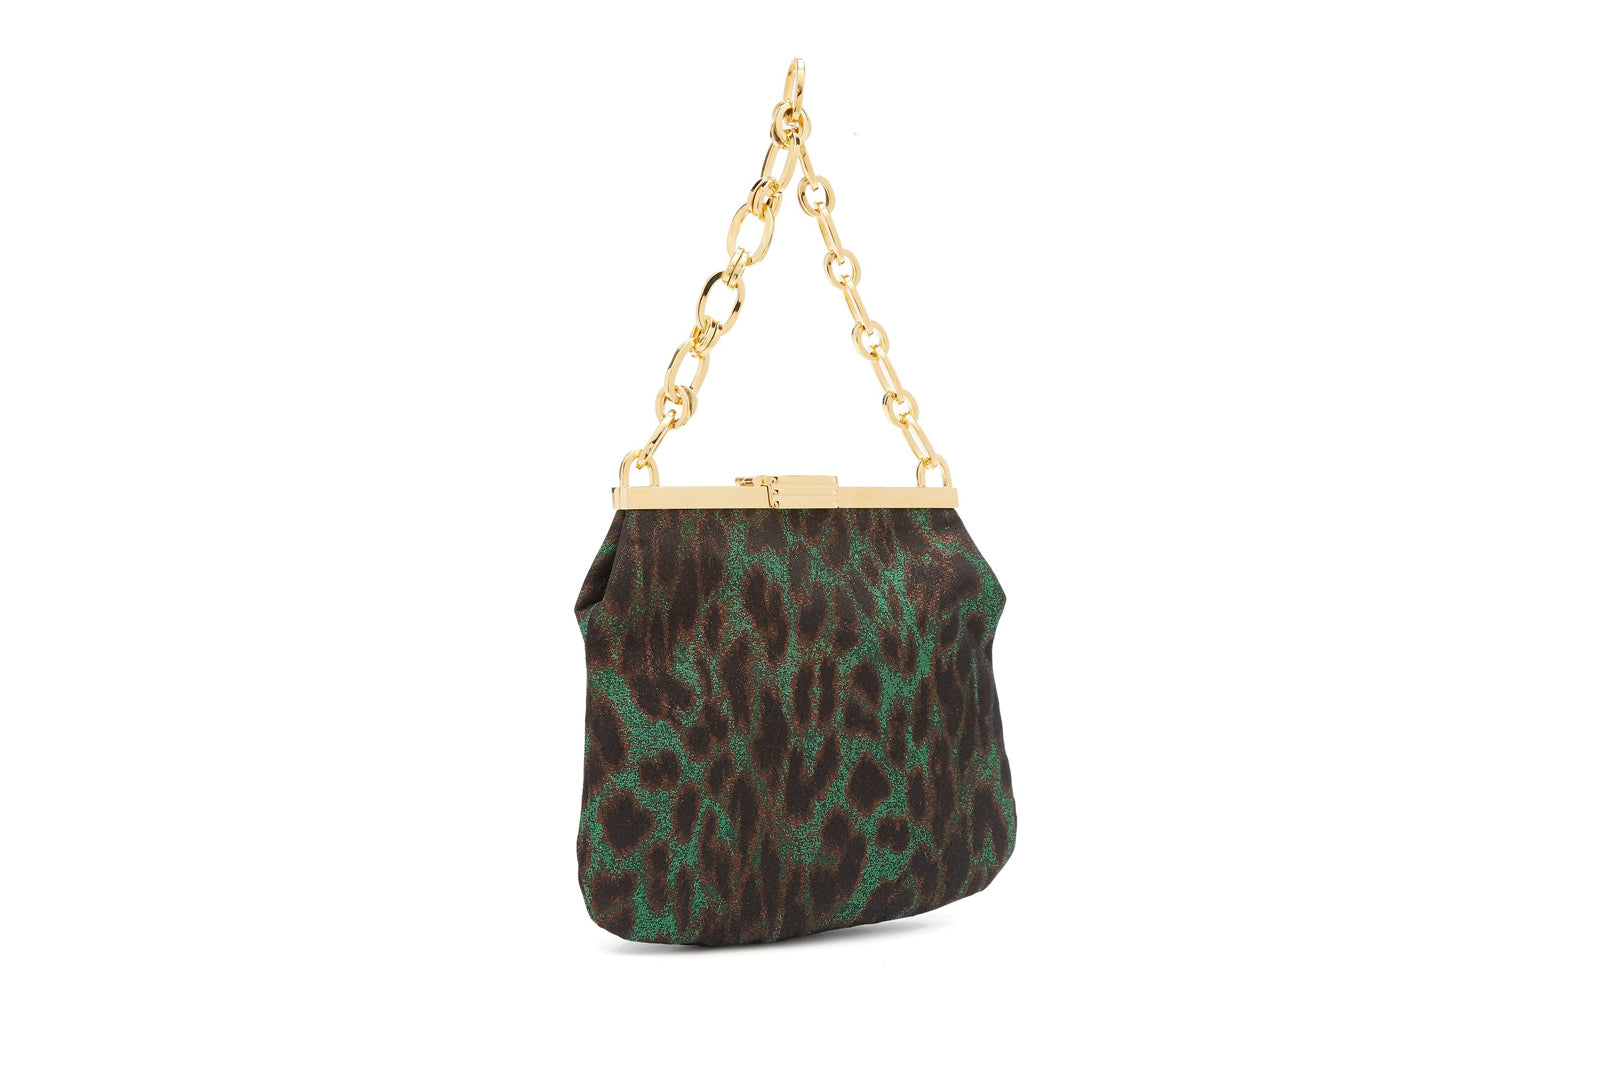 5 AM Clutch in Leopard Jacquard Lurex with 24k Gold Dipped Hardware